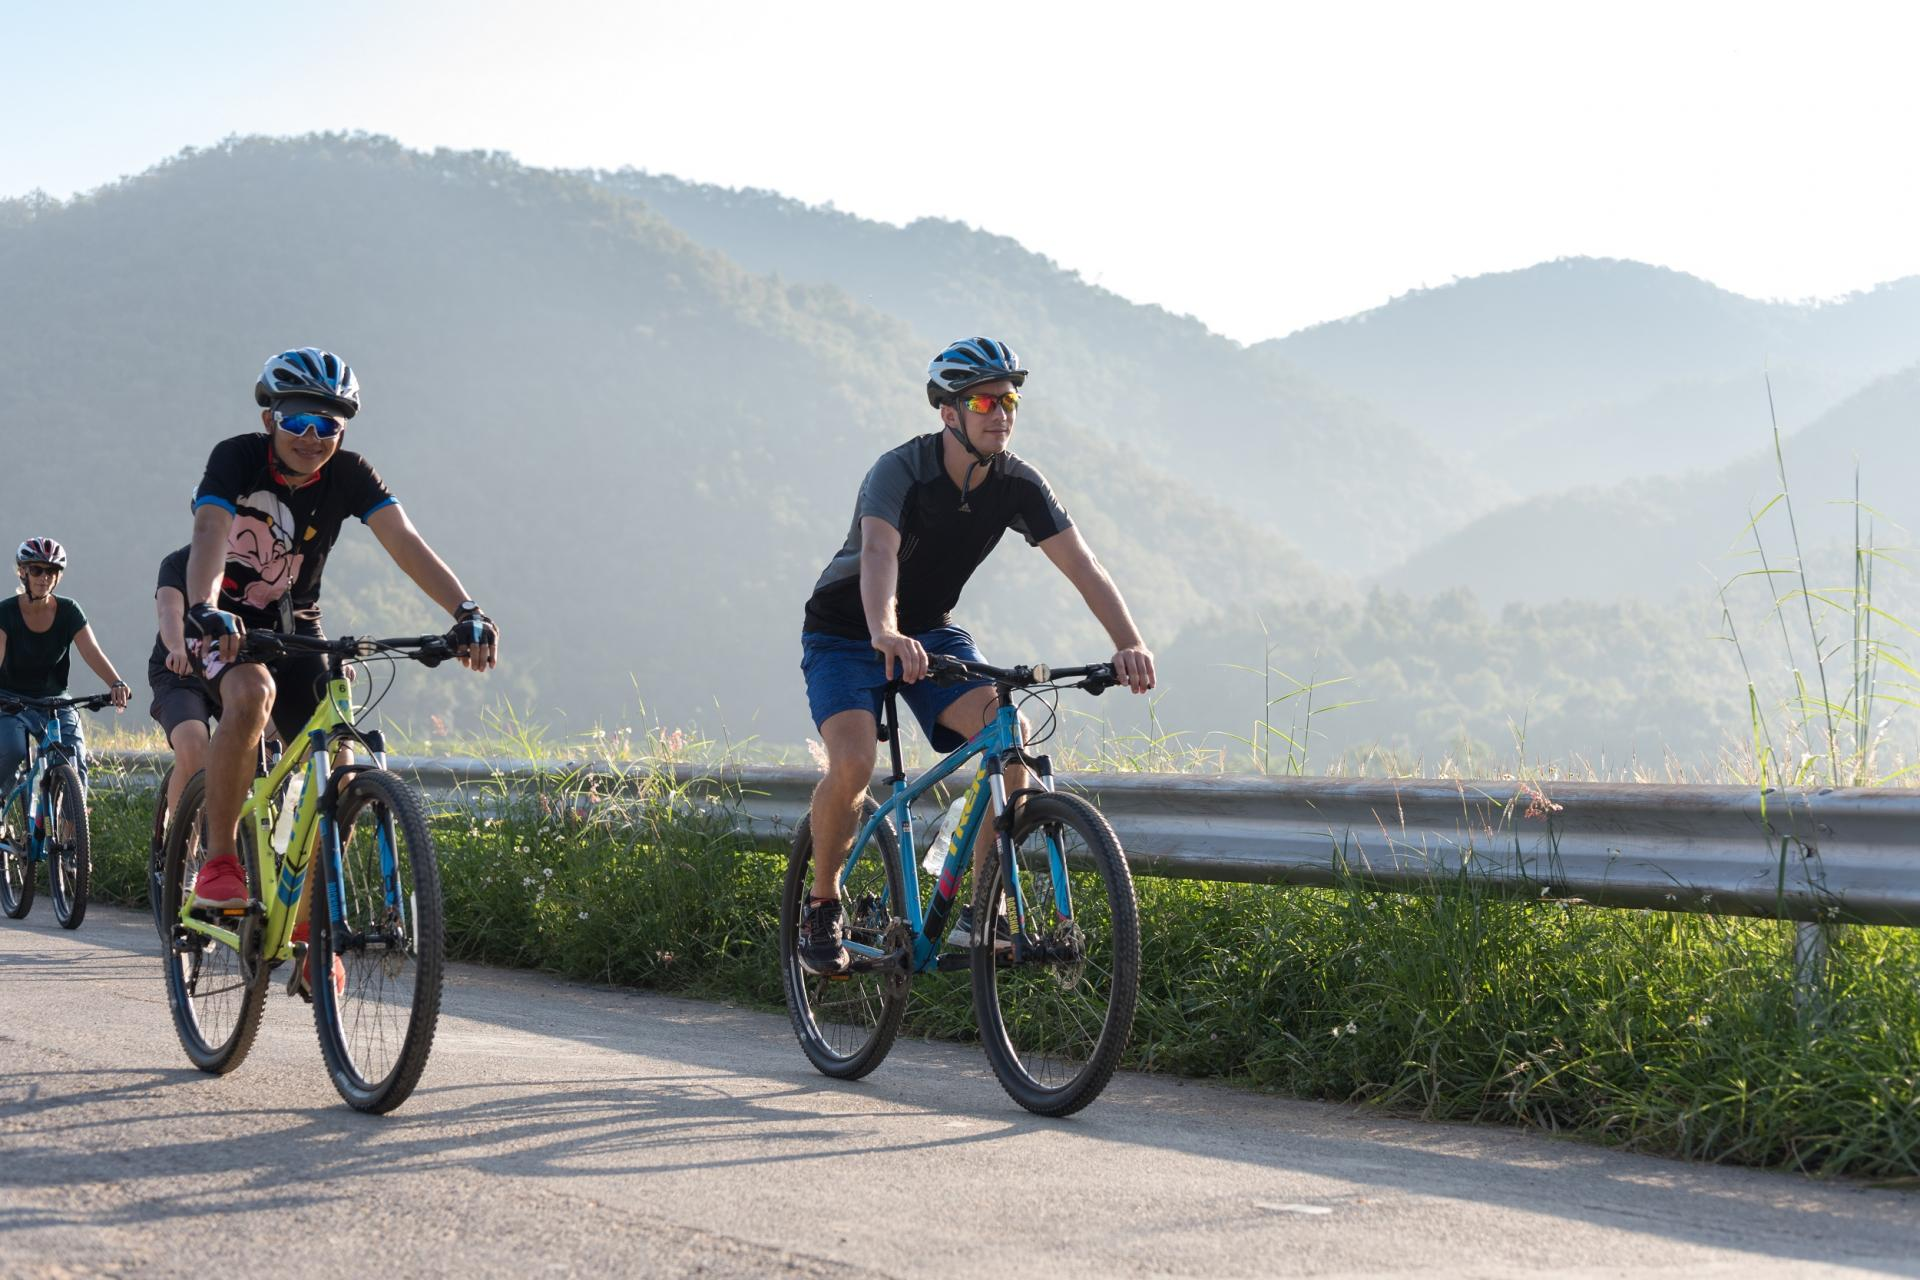 Bicycle tour in Northern Thailand Chiang Mai